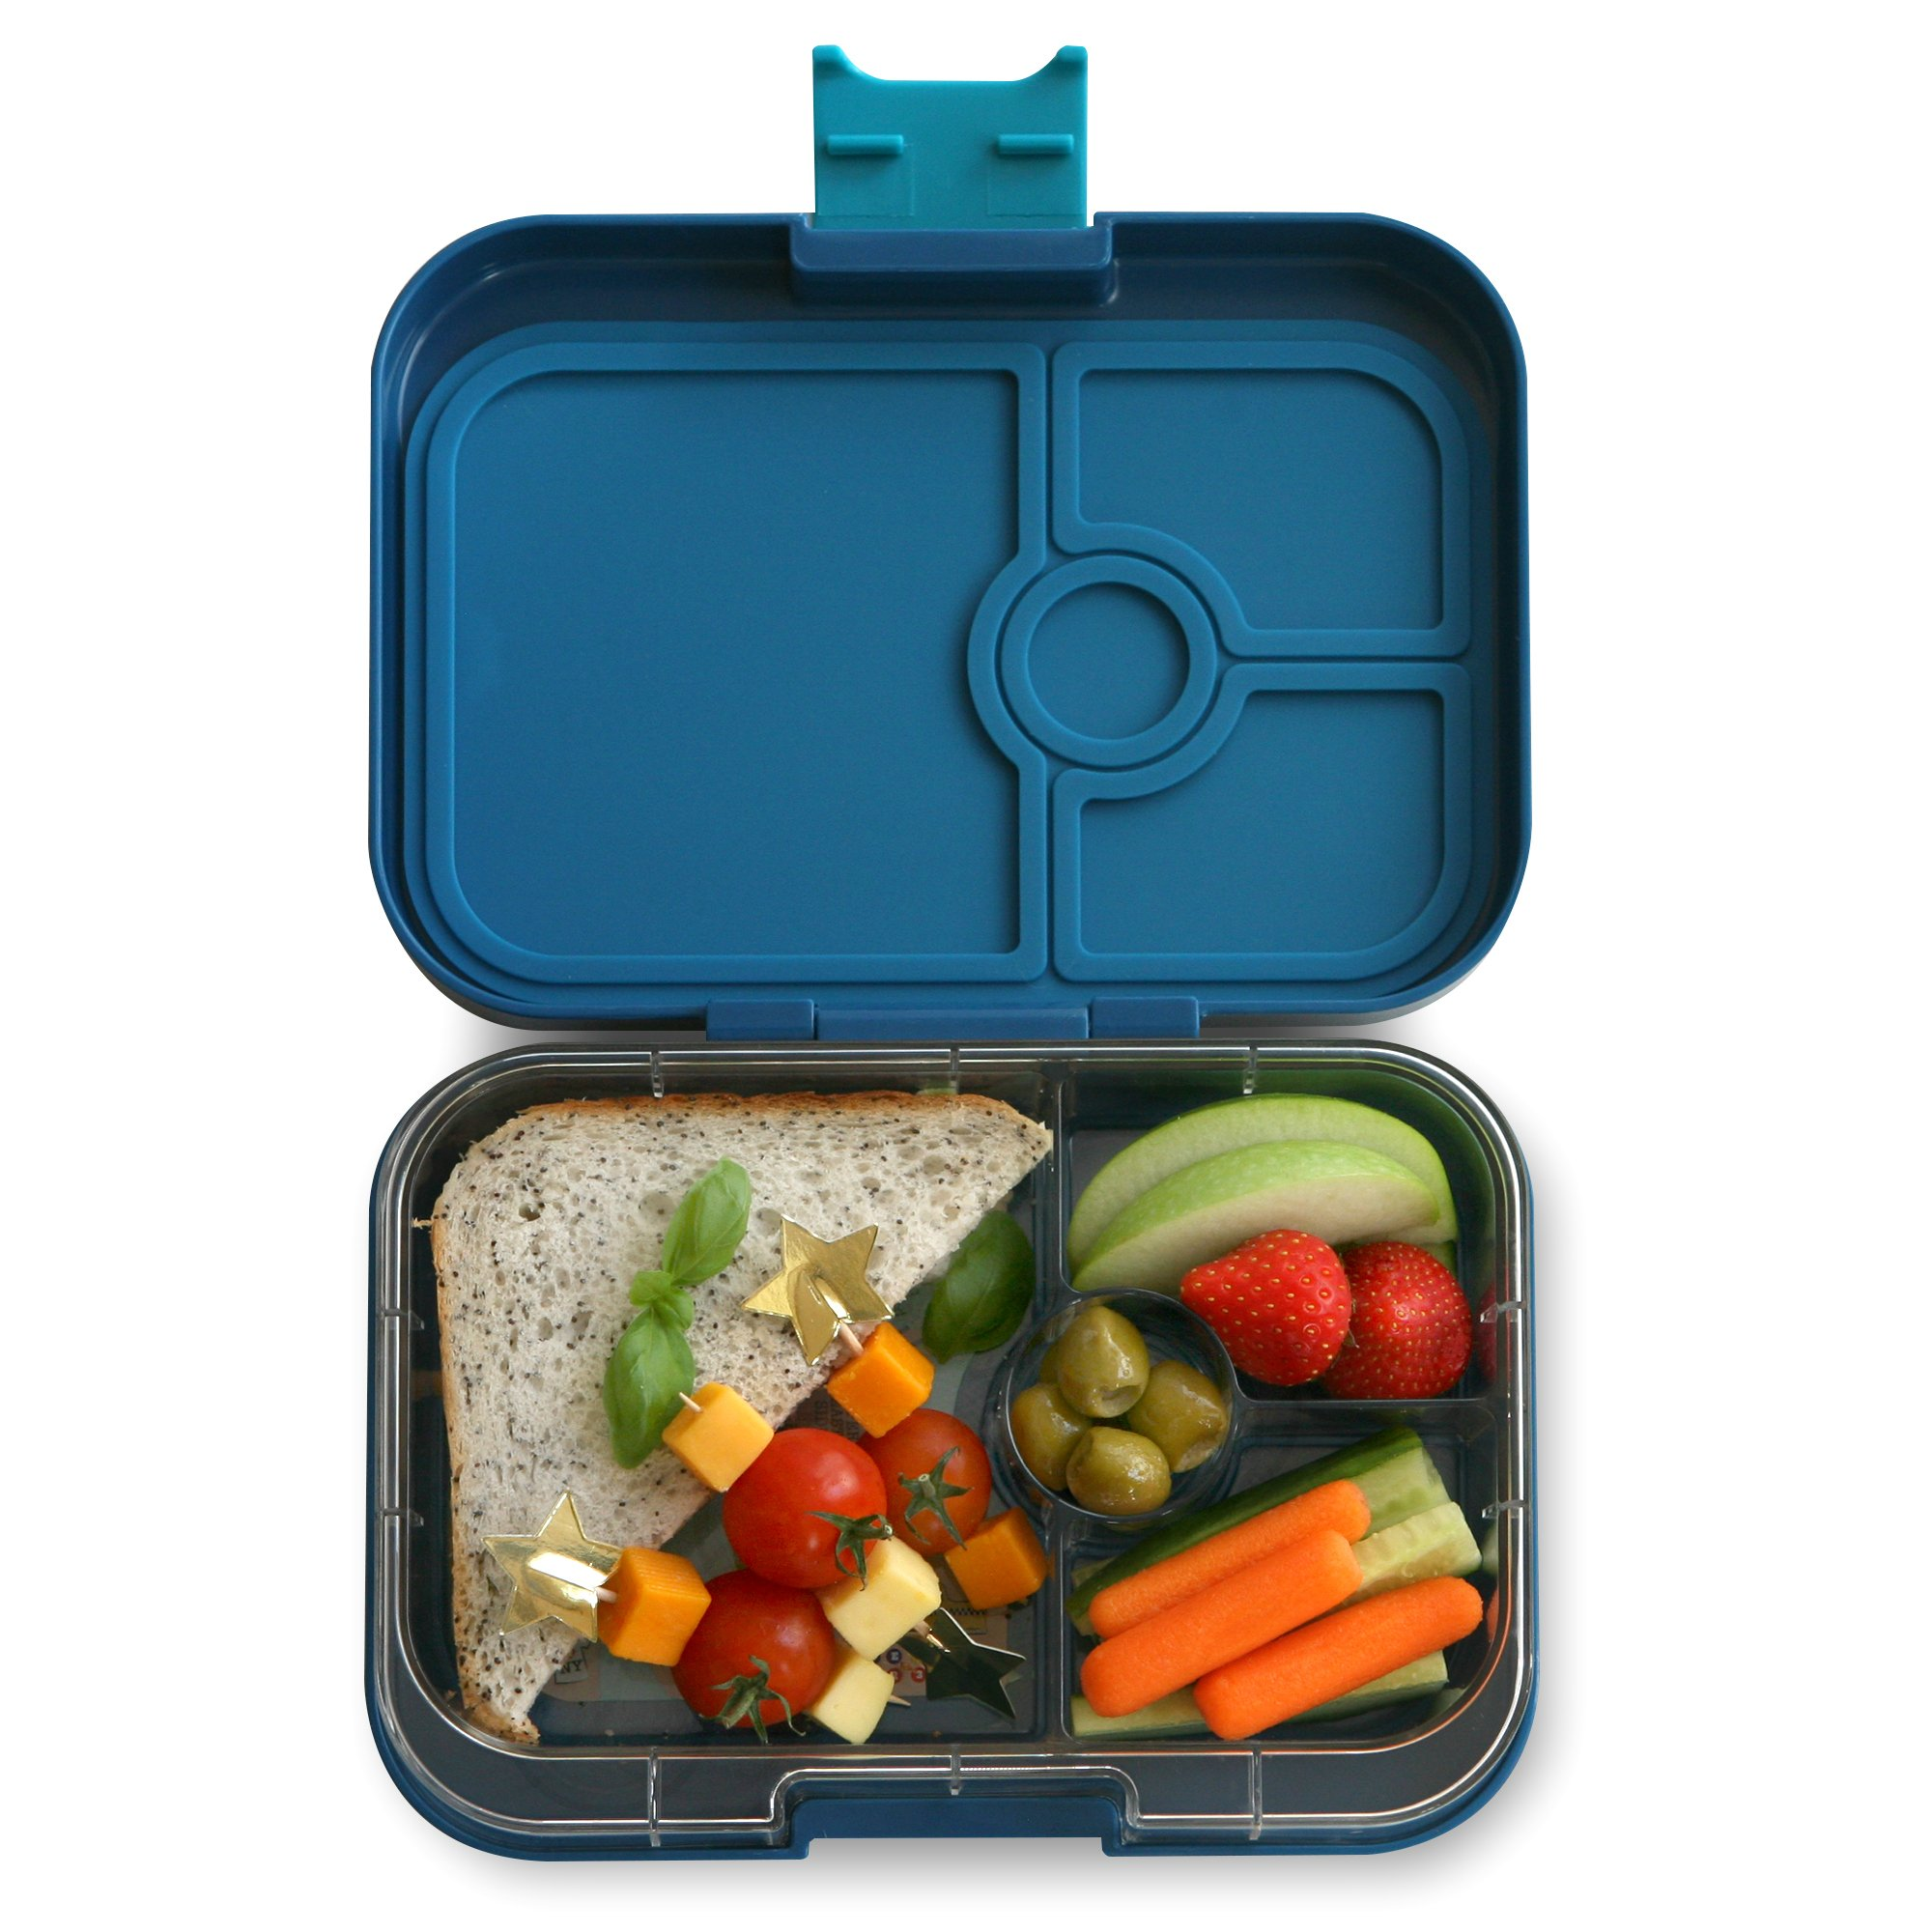 YUMBOX Panino (Empire Blue) Leakproof Bento Lunch Box Container for Kids & Adults; Bento-style snack box offers Durable, Leak-proof, On-the-go Meal and Snack Packing by Yumbox